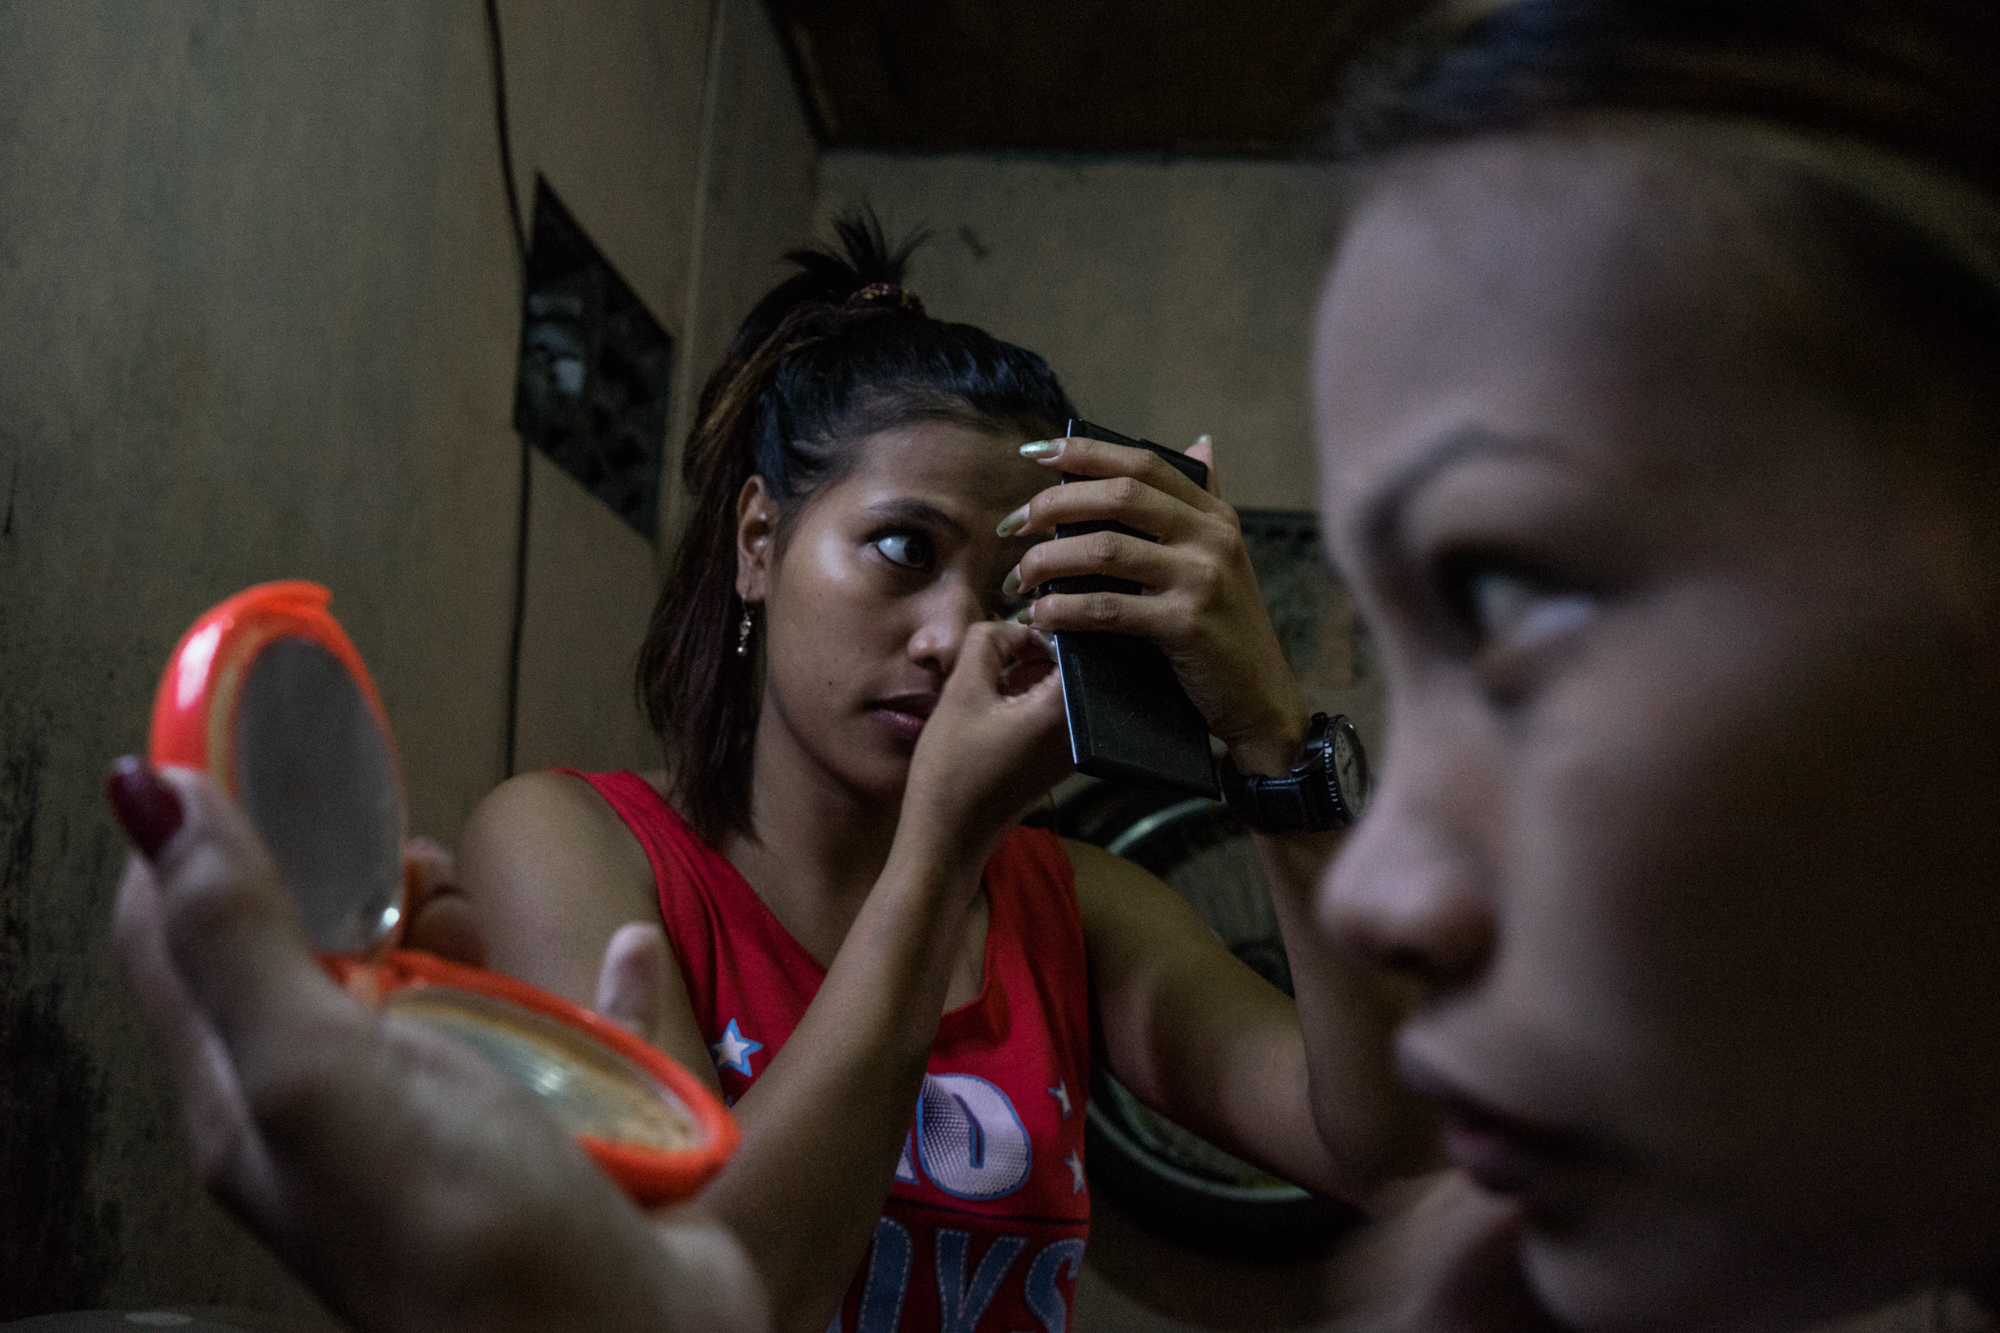 Sisters Gemma and Jojo do their makeup before a night of work in Angeles City, notorious for its sex tourism. (Photo by Hannah Reyes Morales/GroundTruth)